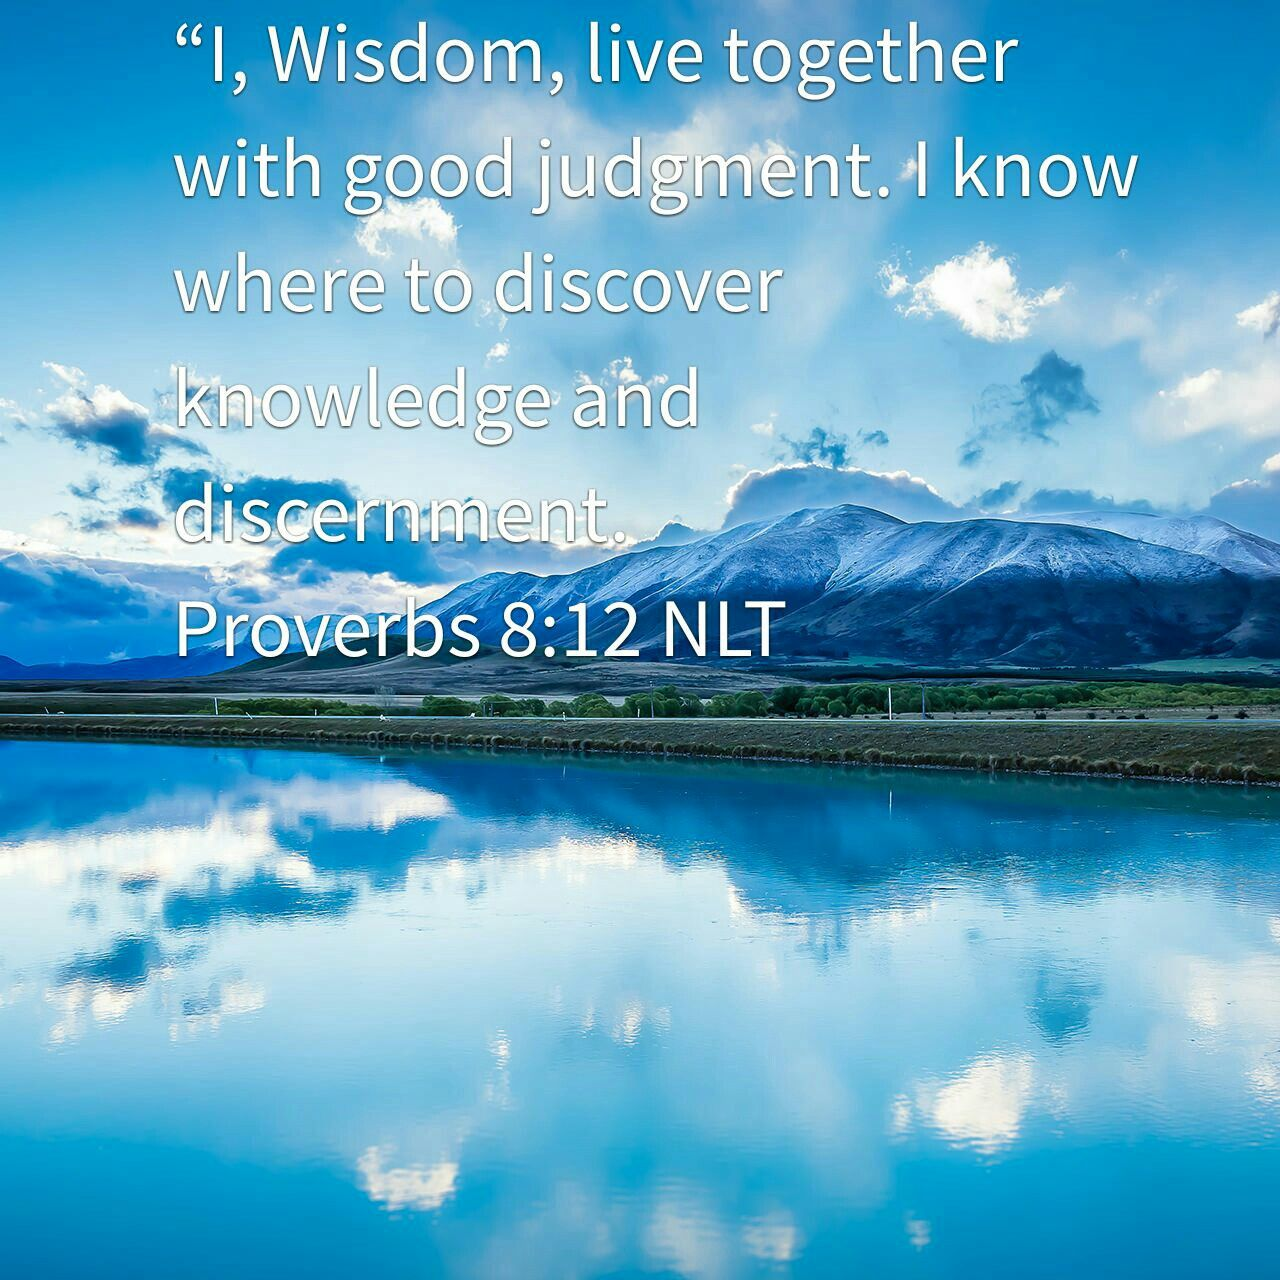 Wisdom Knowledge Discernment 💜 Proverbs 8:12 NLT | Bible apps ...